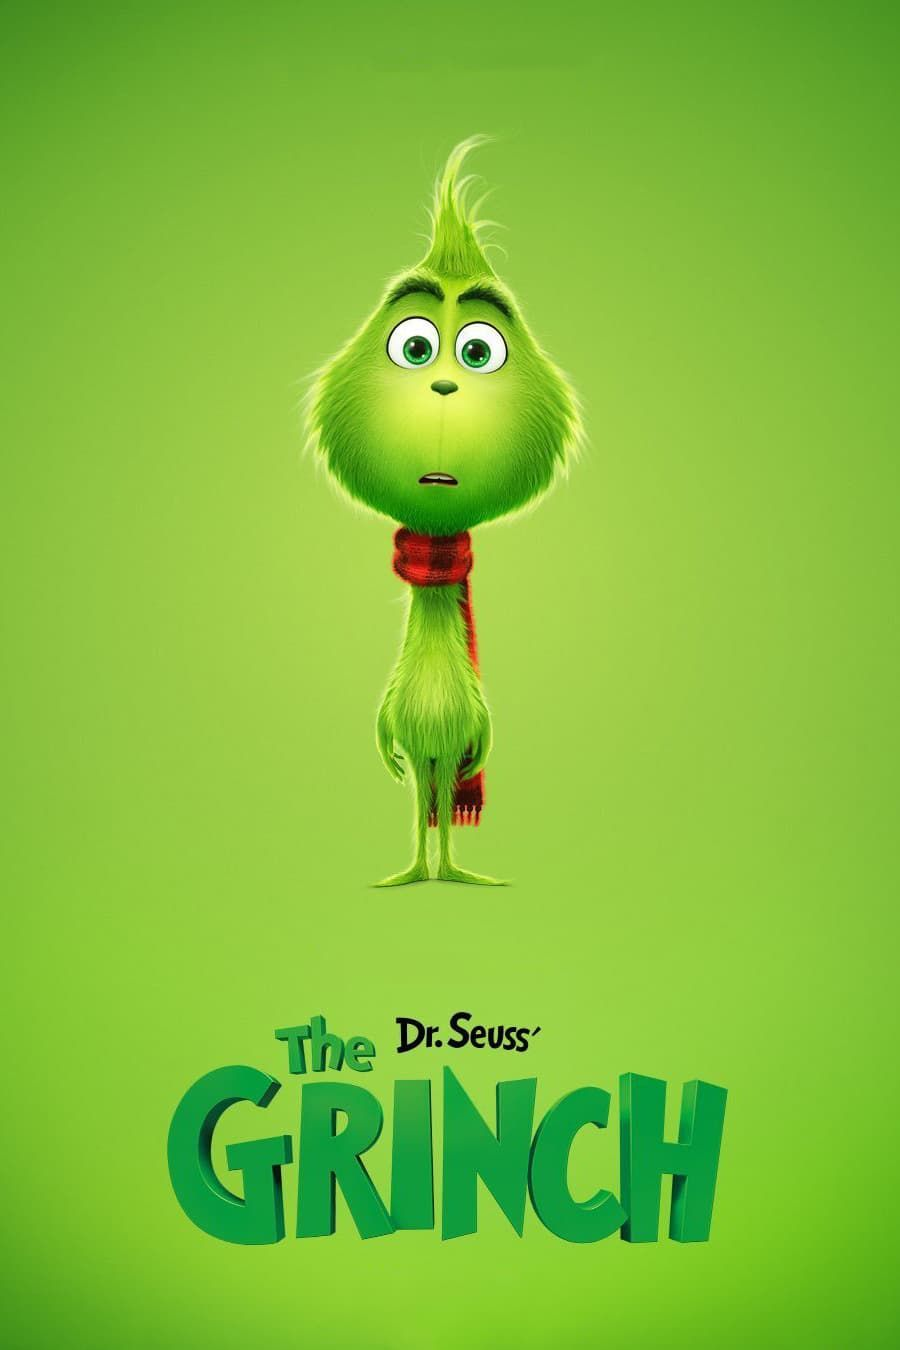 Le Grinch 2018 Streaming : grinch, streaming, Pines, Guardados